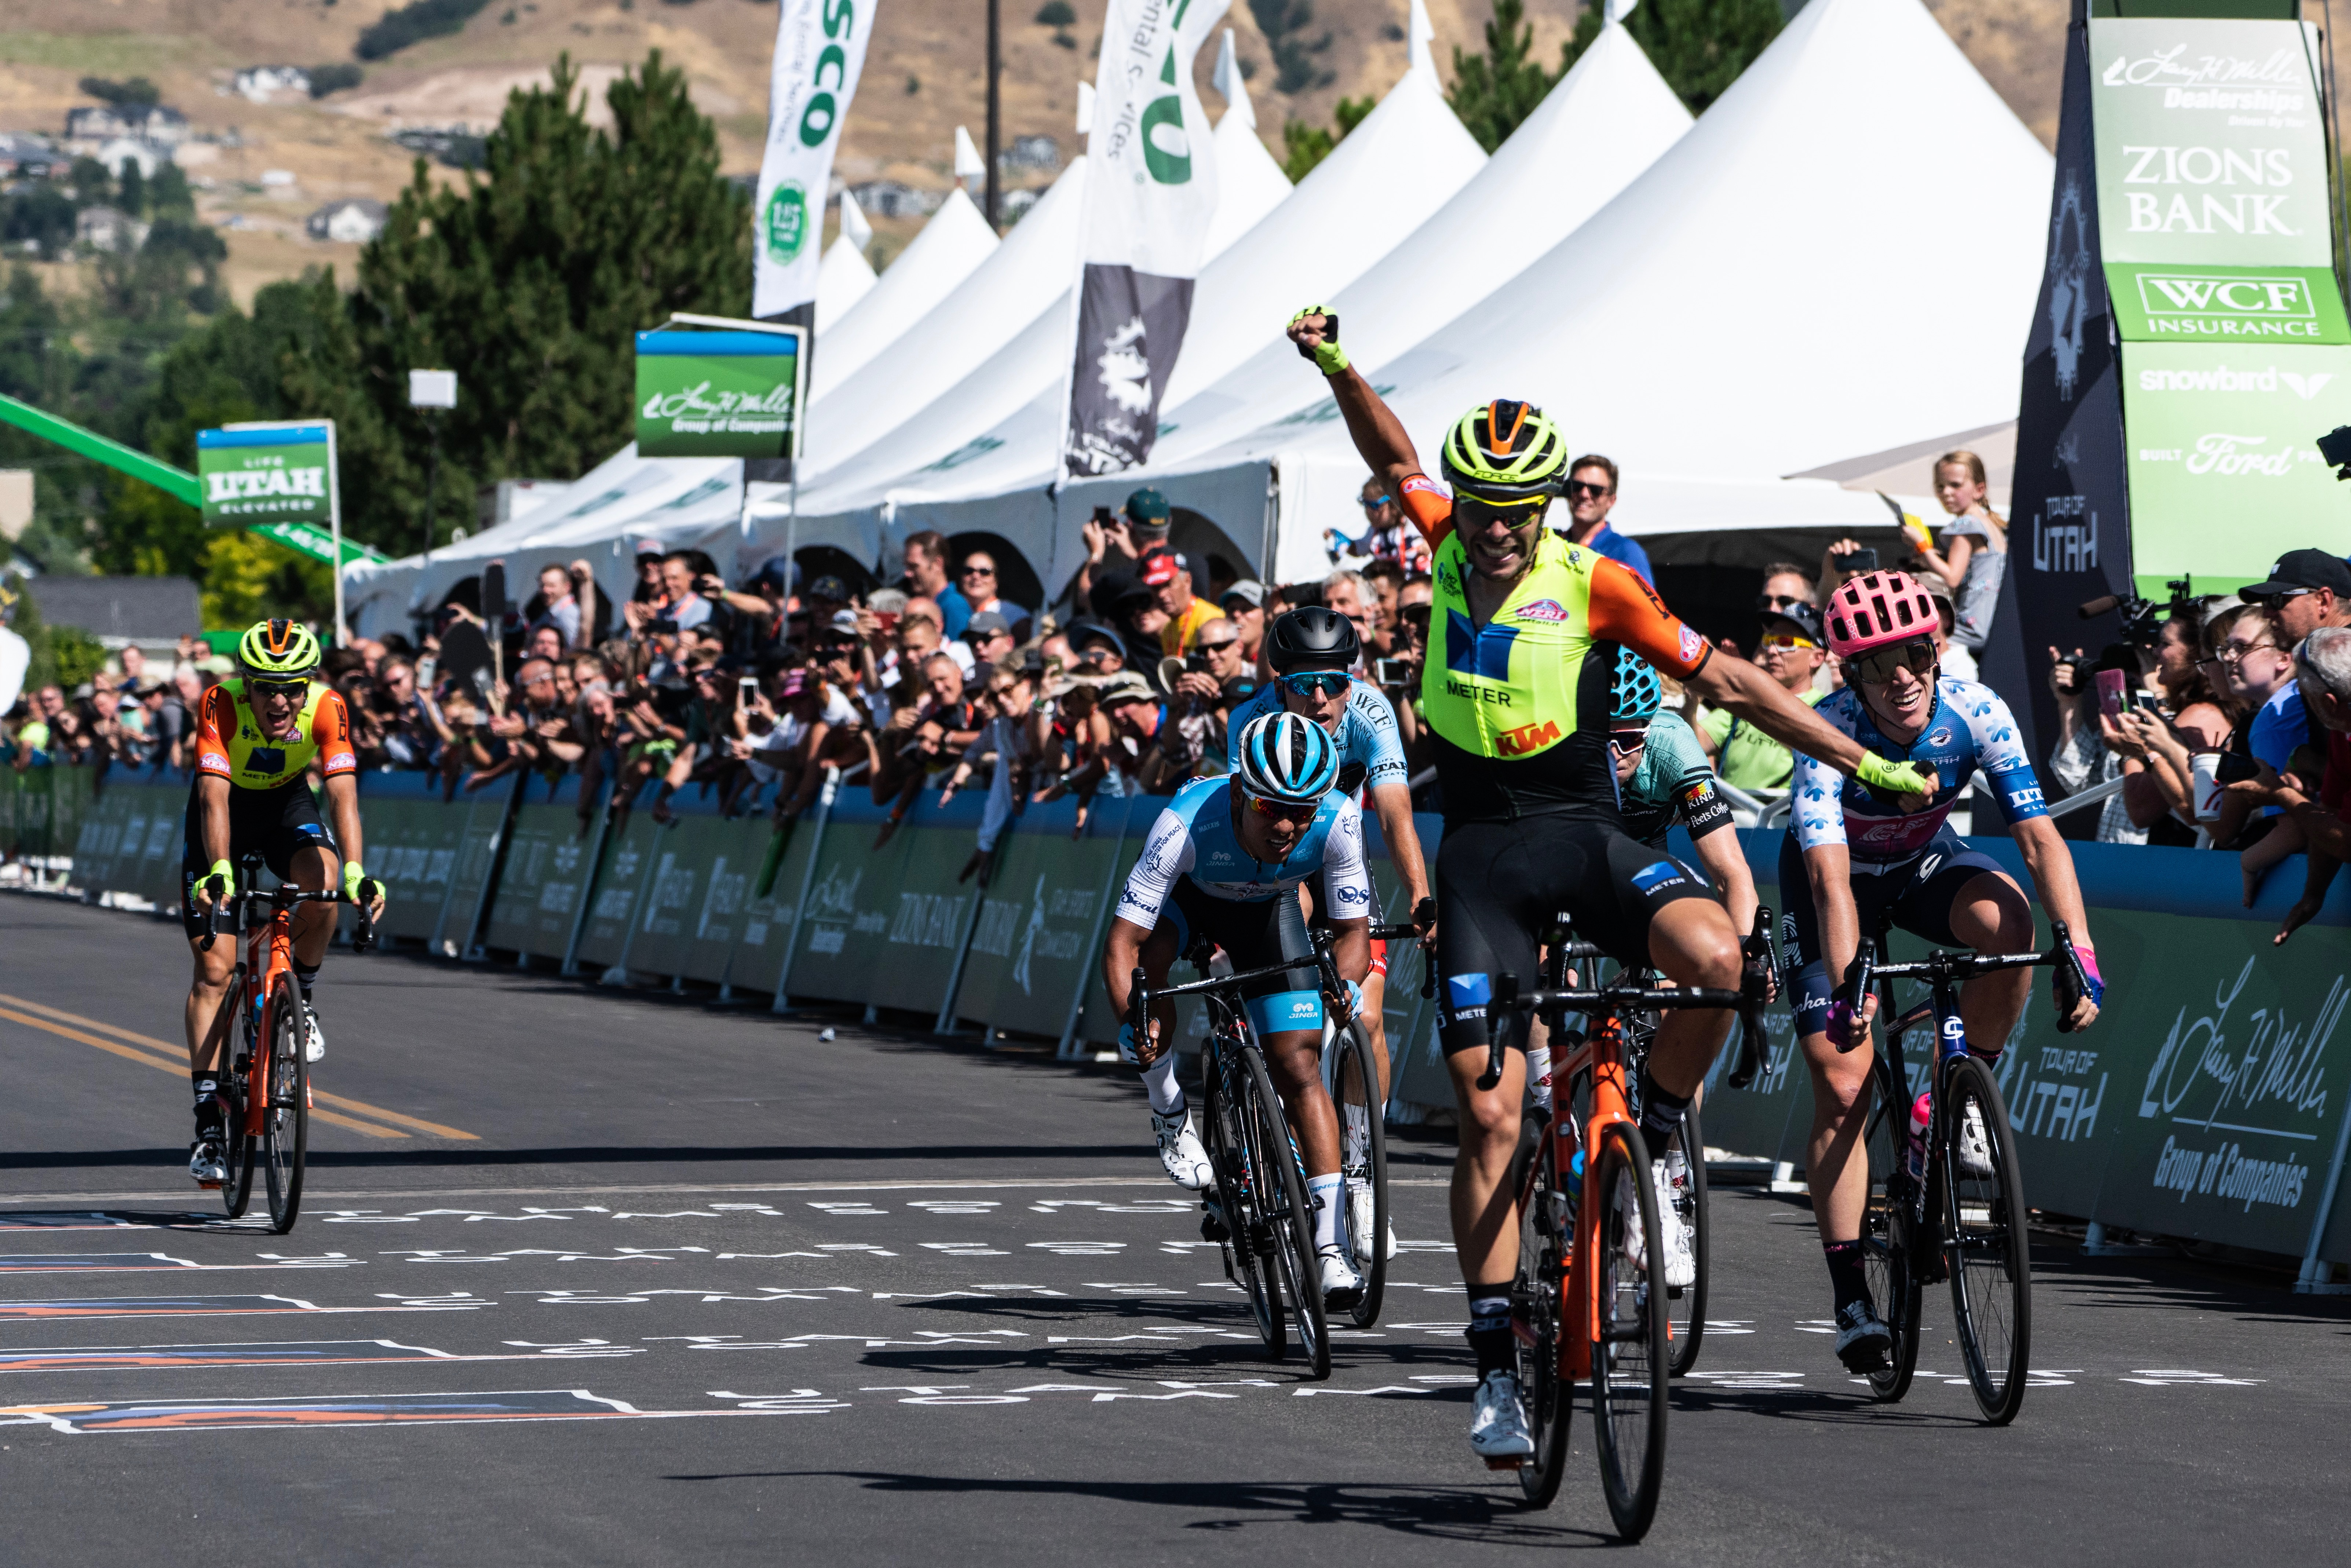 TOUR OF UTAH: UMBERTO MARENGO, AN UNFORGETTABLE FIRST WIN